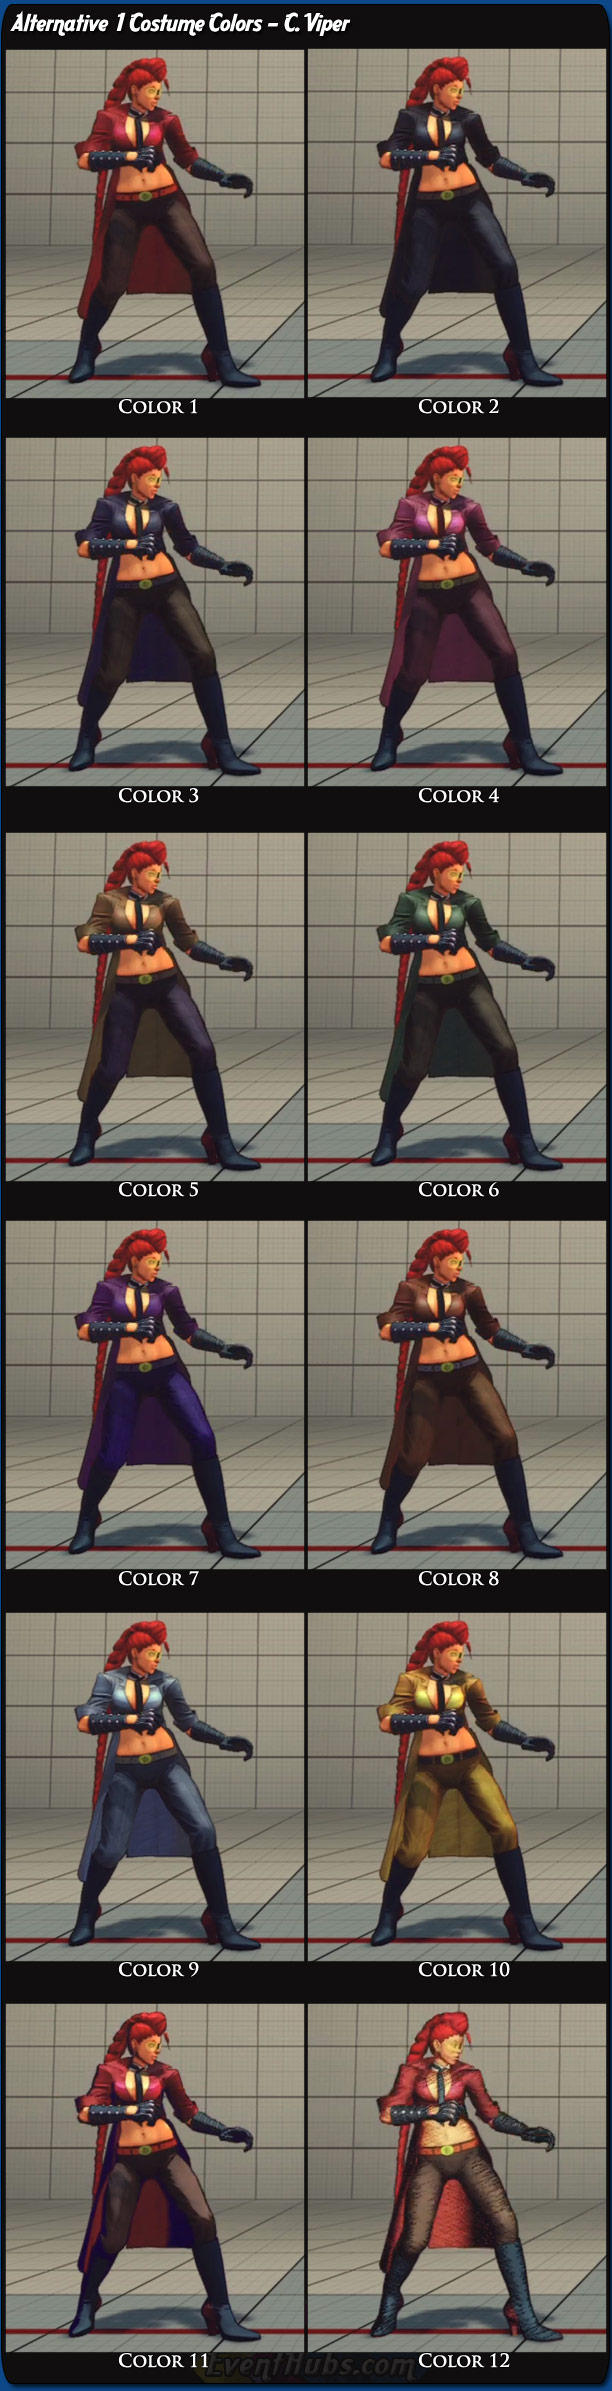 C. Viper's alternative costume colors for Super Street Fighter 4